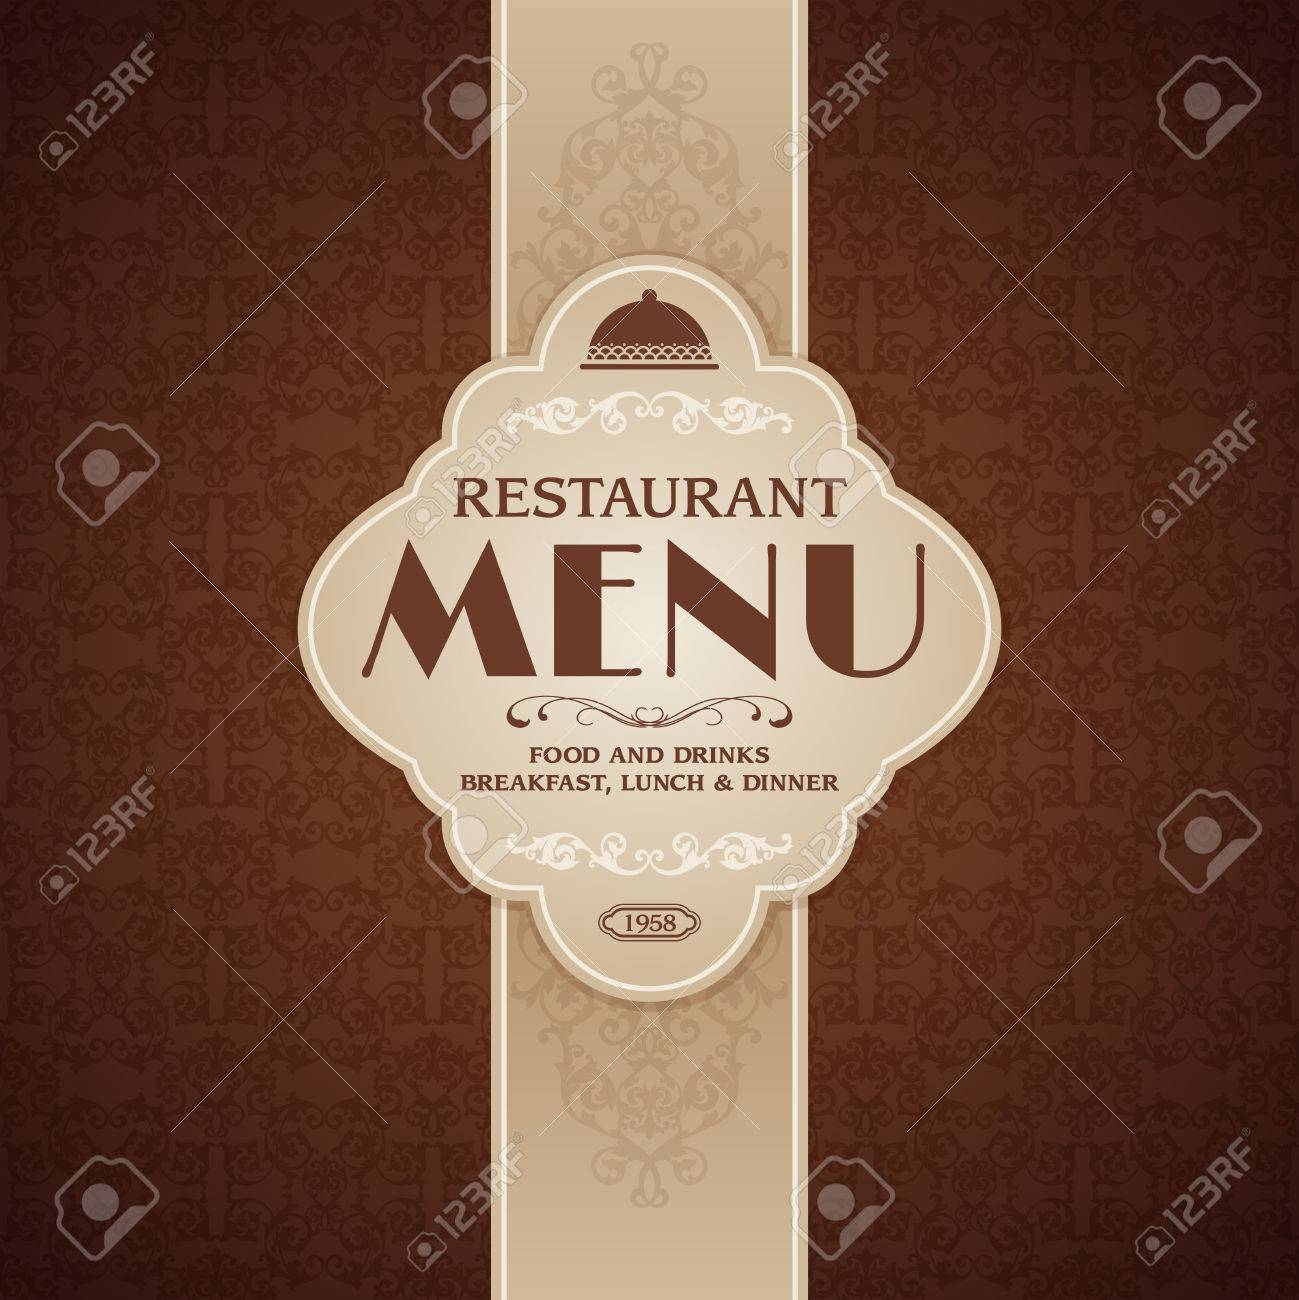 Restaurant Cafe Menu Brochure Template With Cooking Elements - Menu brochure template free